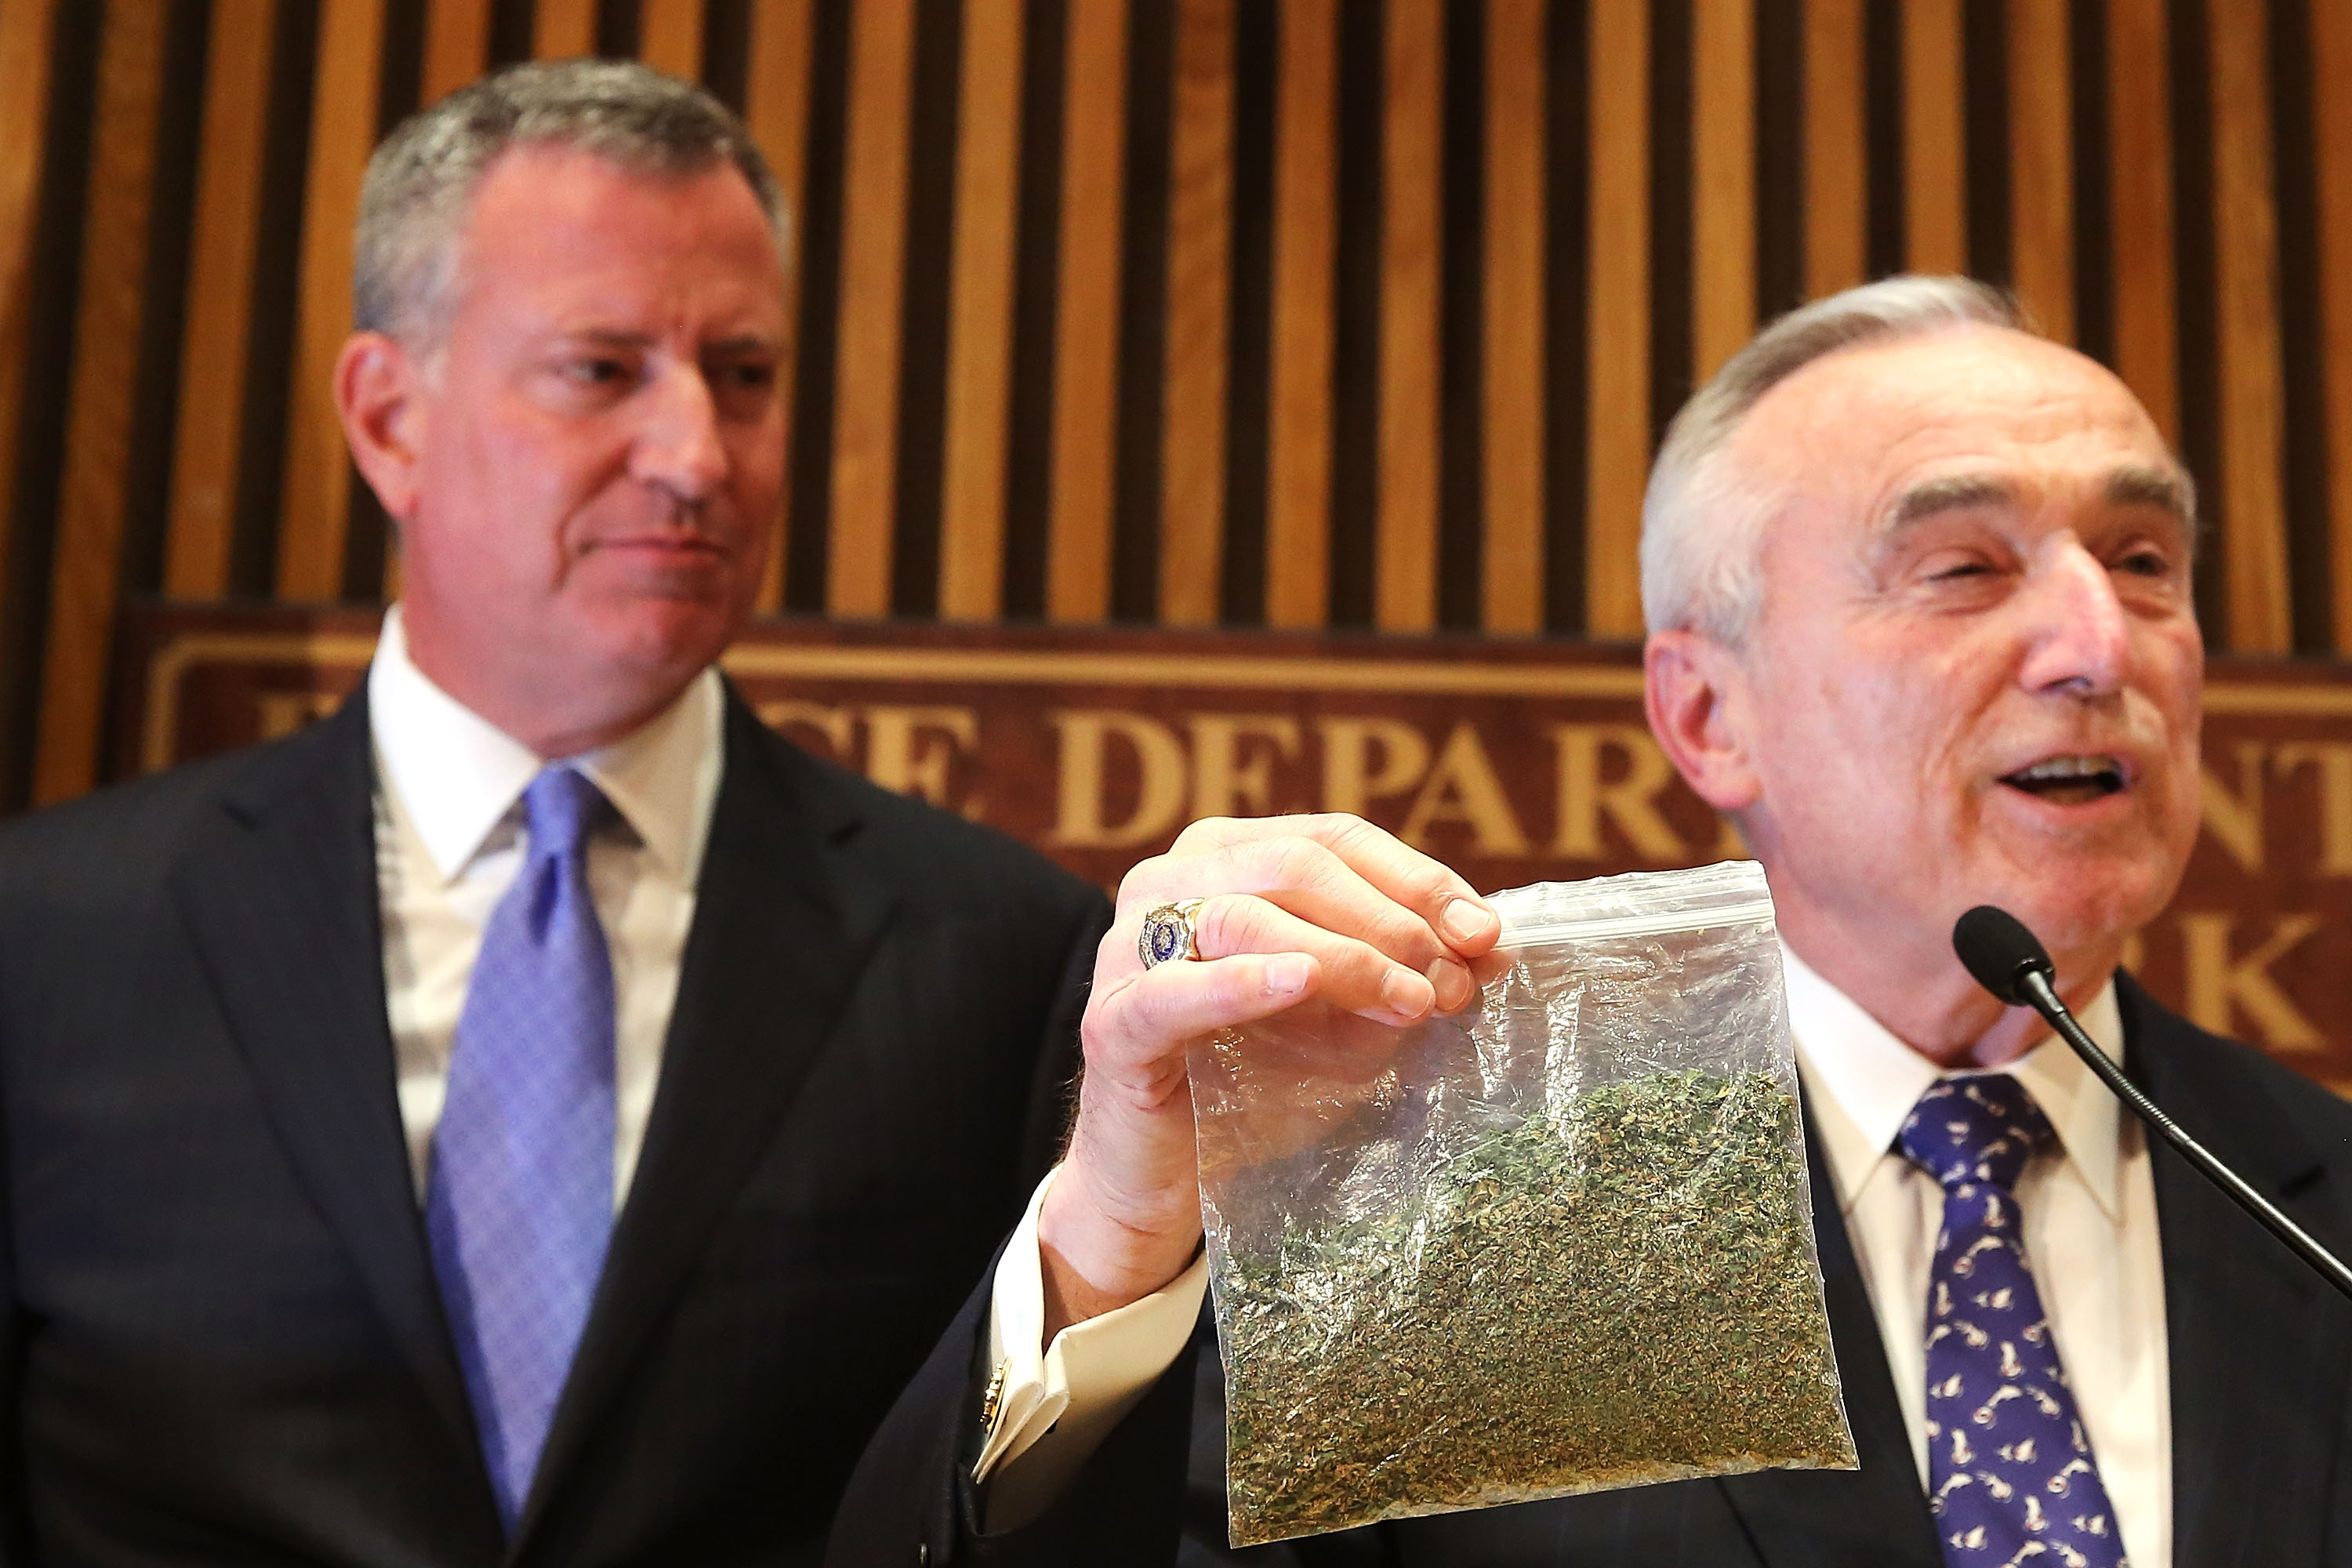 New York City Police Commissioner Bill Bratton holds up a bag of oregano to demonstrate what 25 grams of marijuana looks like at a news conference to announce changes to New York's marijuana policy.  (Photo by Spencer Platt/Getty Images)